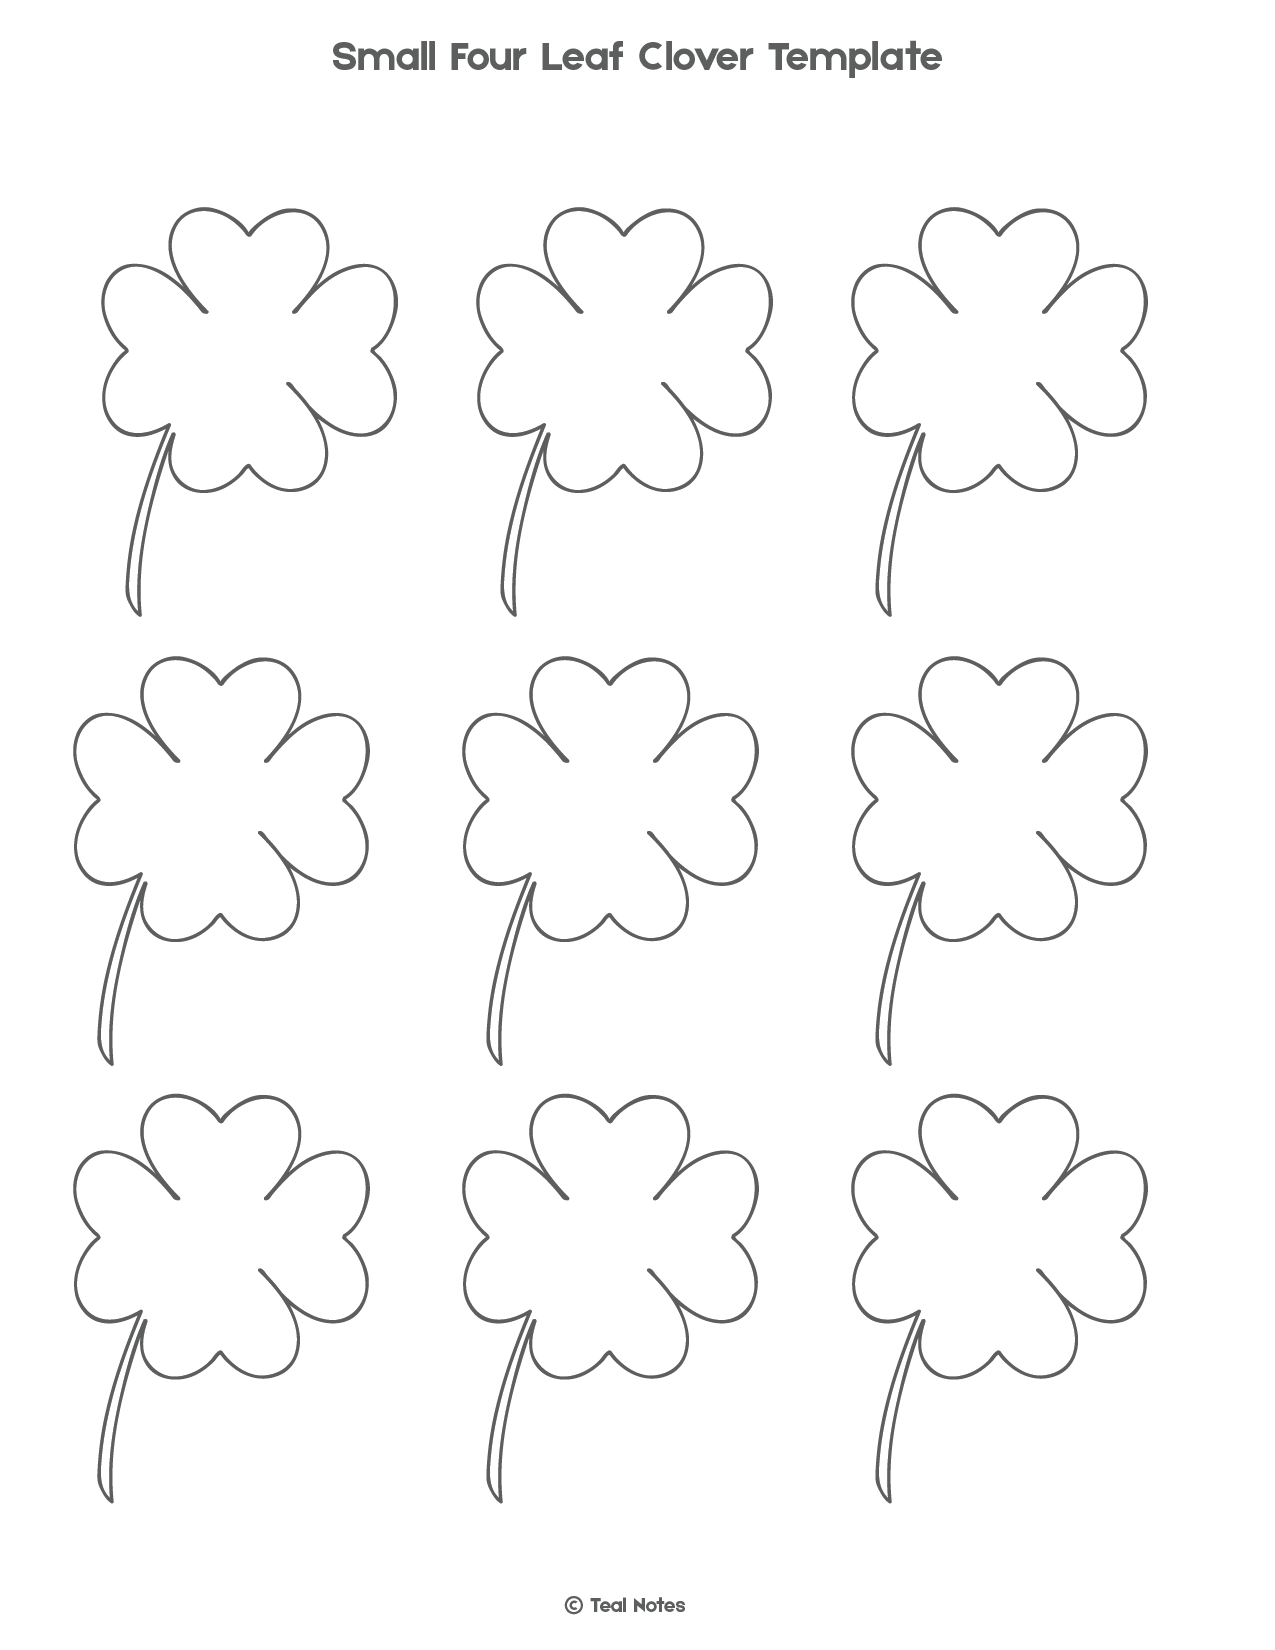 photograph relating to Four Leaf Clover Printable Template identify 4 Leaf Clover Template: Free of charge Shamrock Template Printable